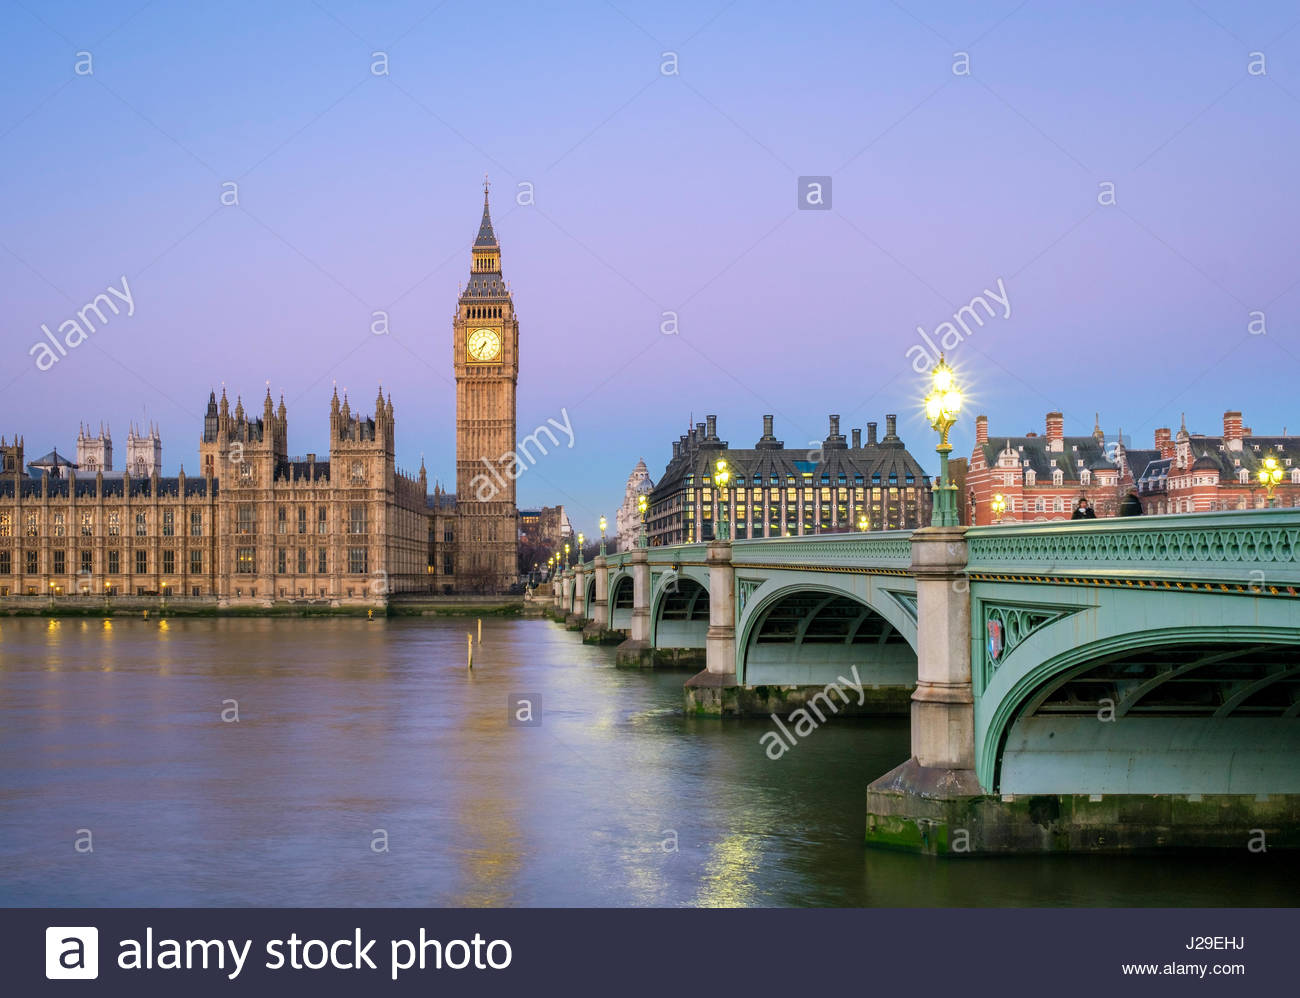 United Kingdom, England, London. Westminster Bridge, Palace of Westminster and the clock tower of Big Ben (Elizabeth Stock Photo